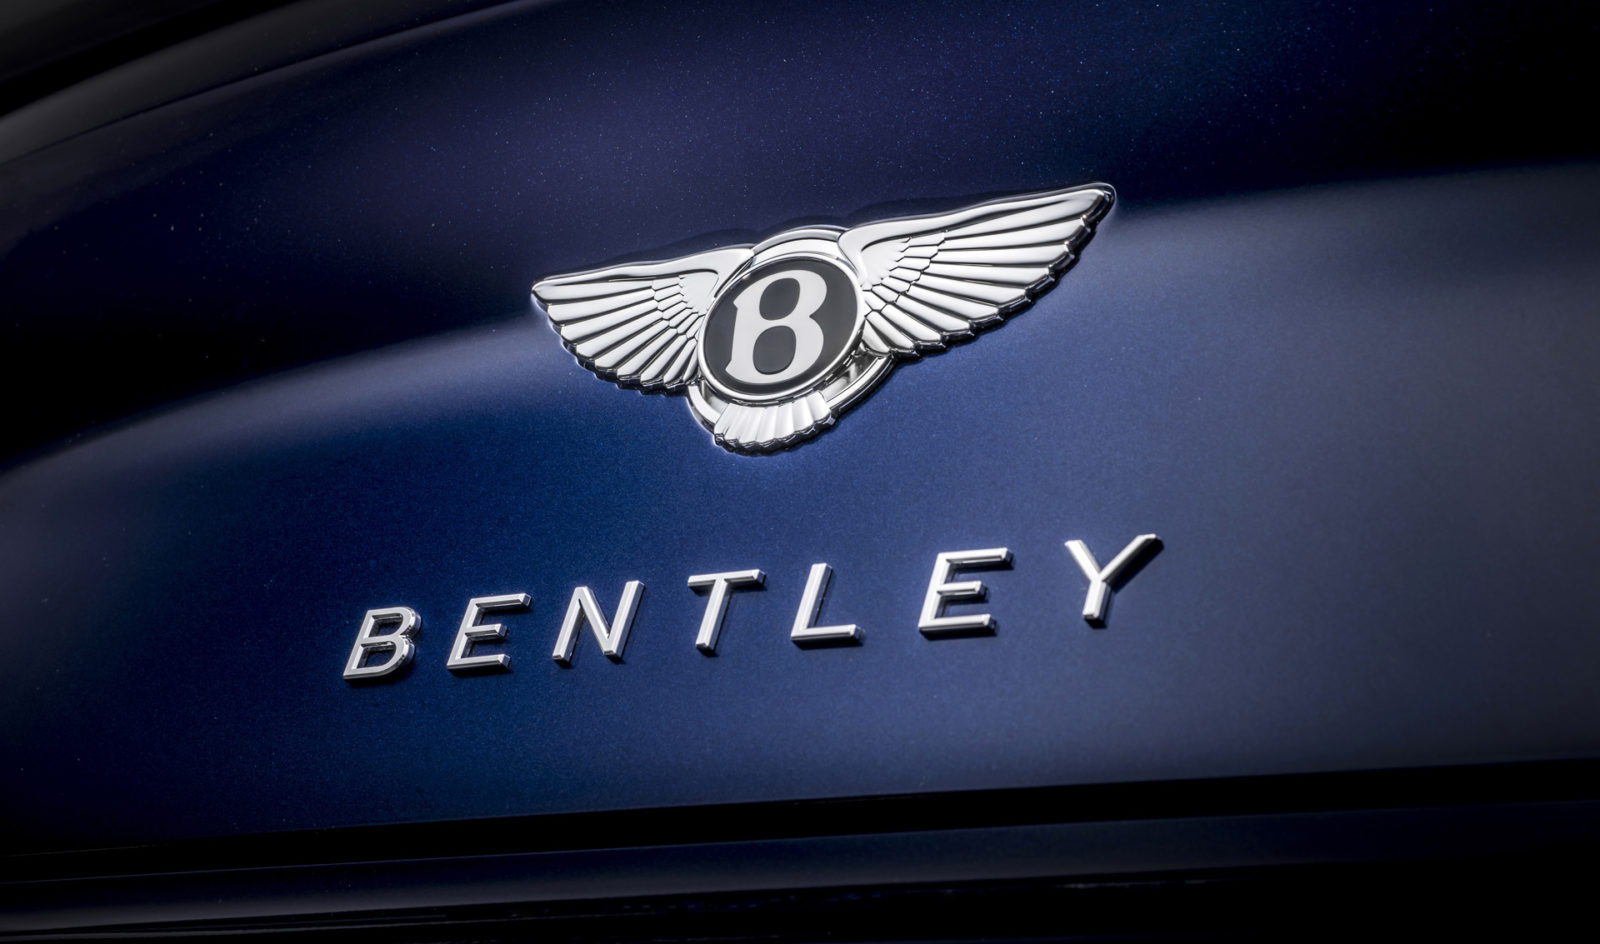 first-bentley-ev-due-in-2025-will-be-related-to-audi-artemis-project